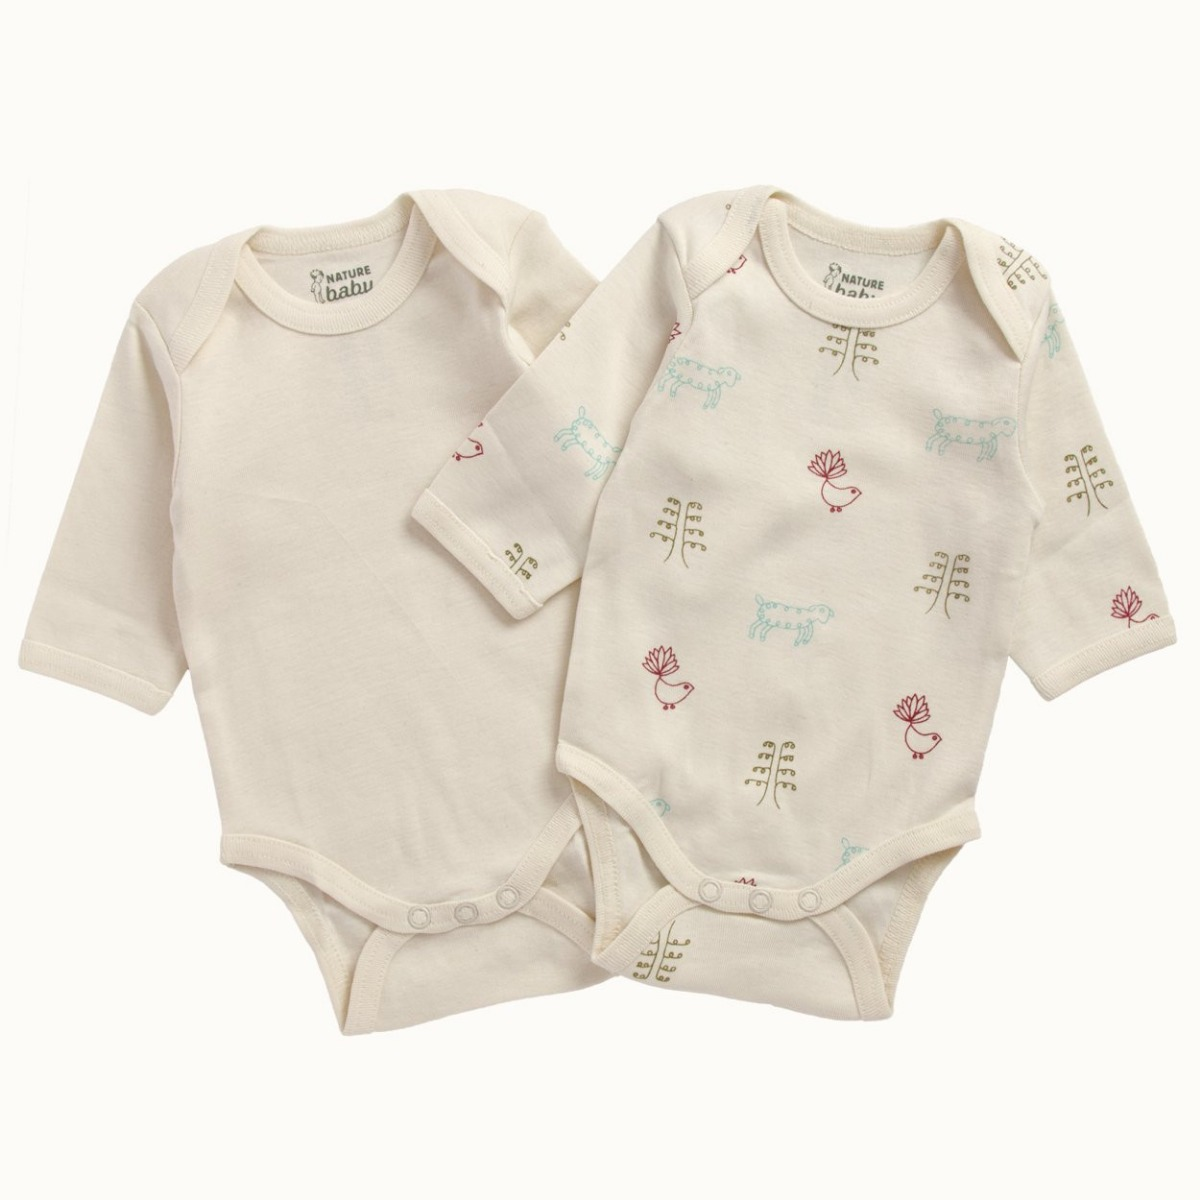 Nature Baby Organic Cotton 2 Pack Bodysuit 6-12M